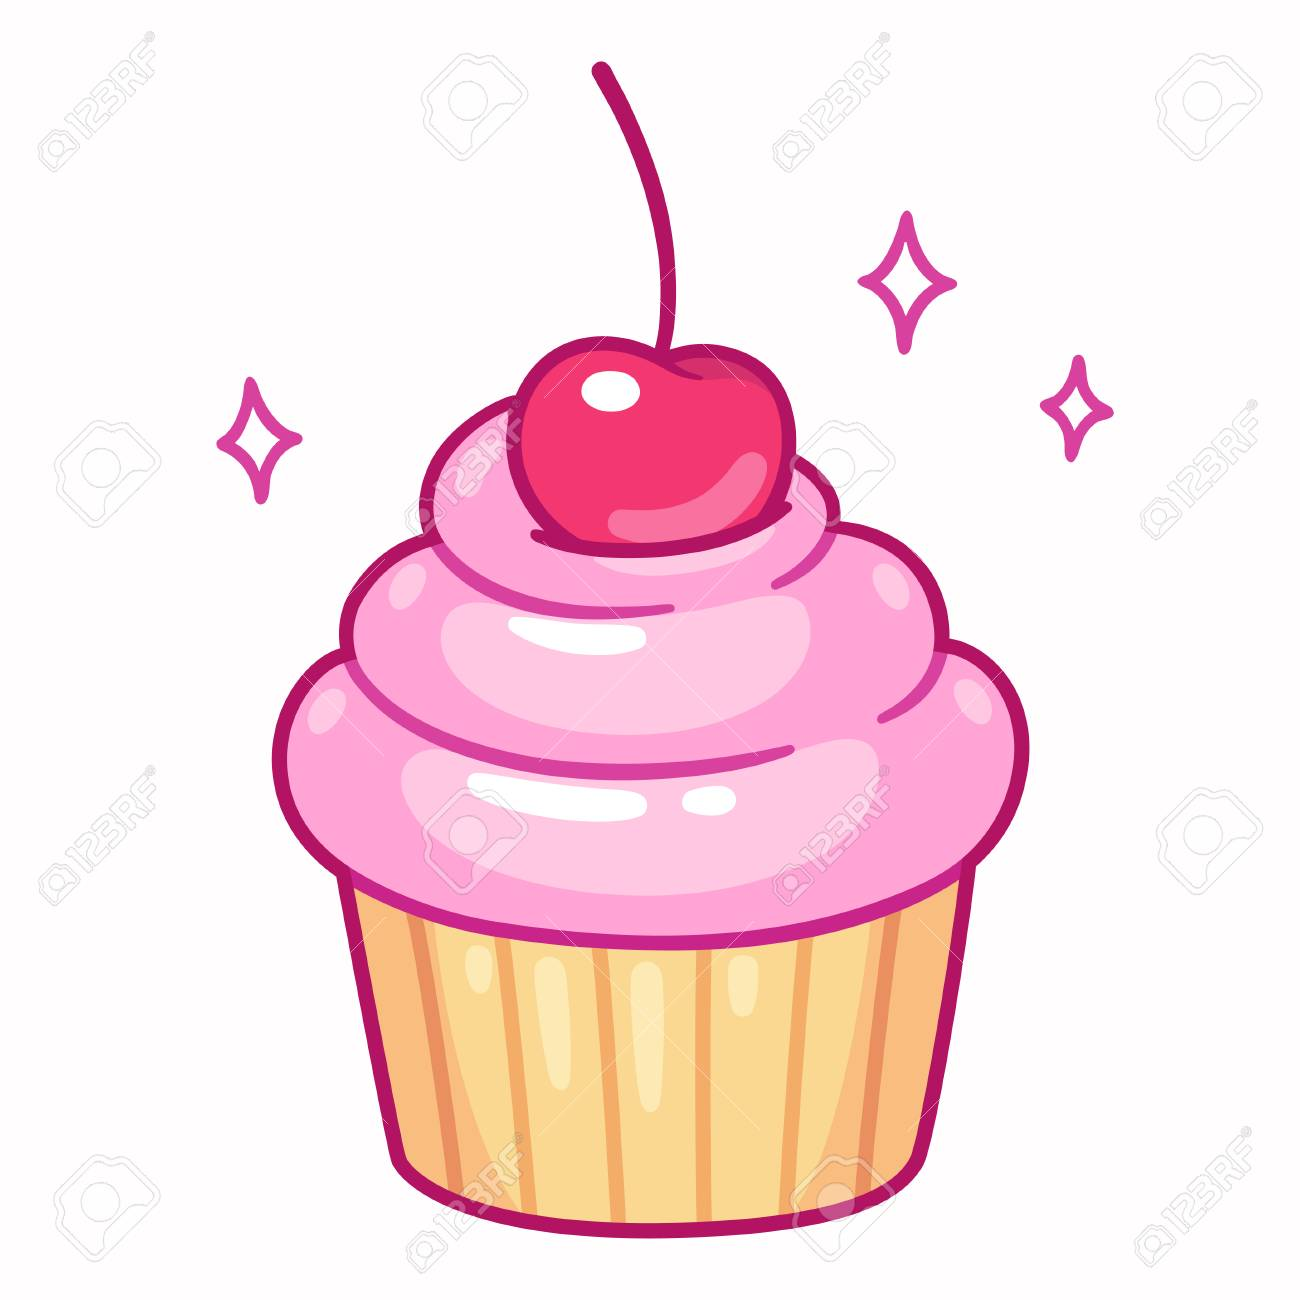 Cute cupcake with pink frosting and cherry, cartoon drawing